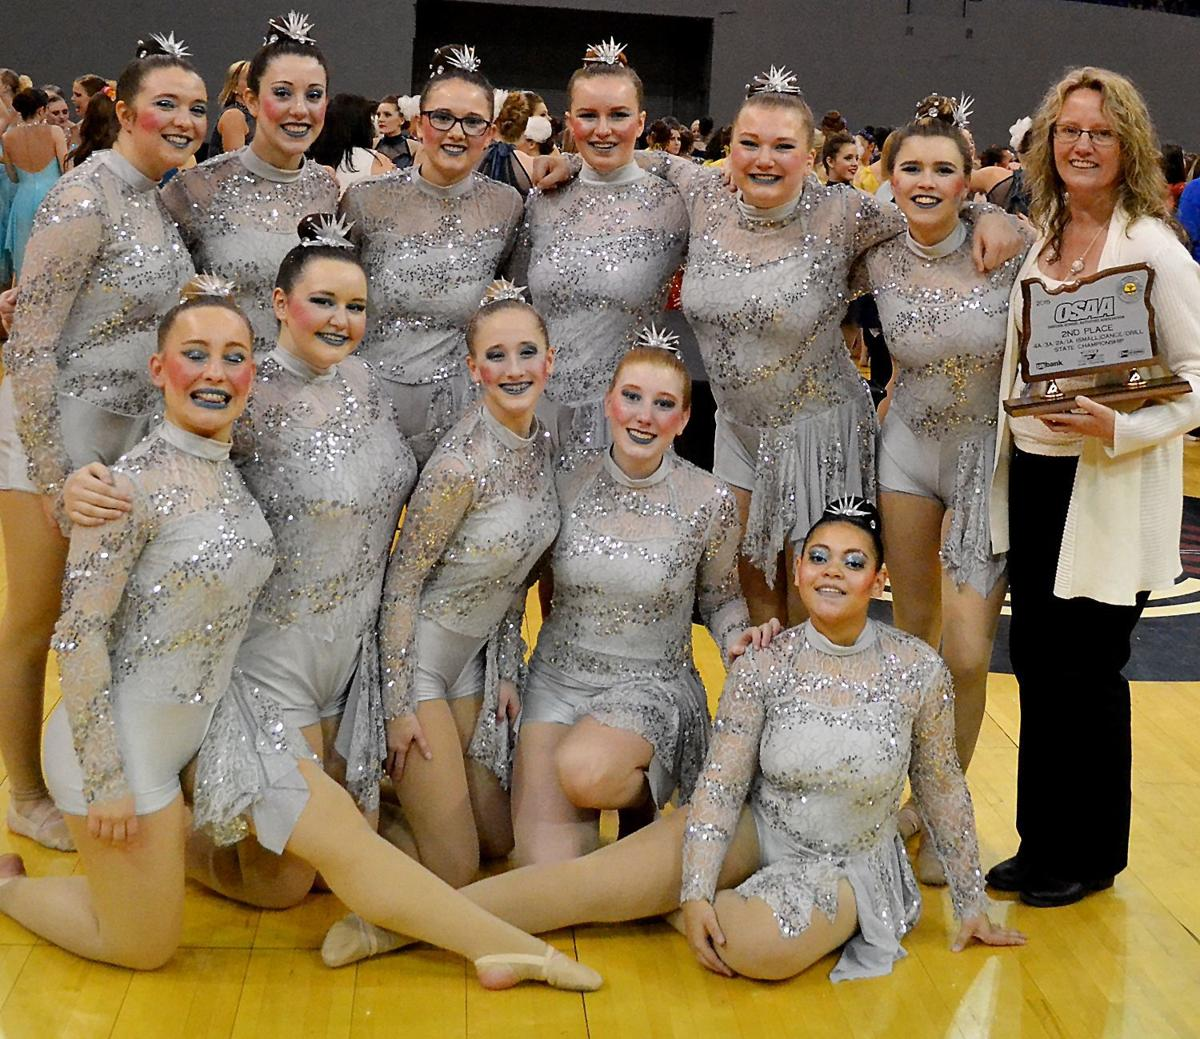 Gold claims 2nd at state